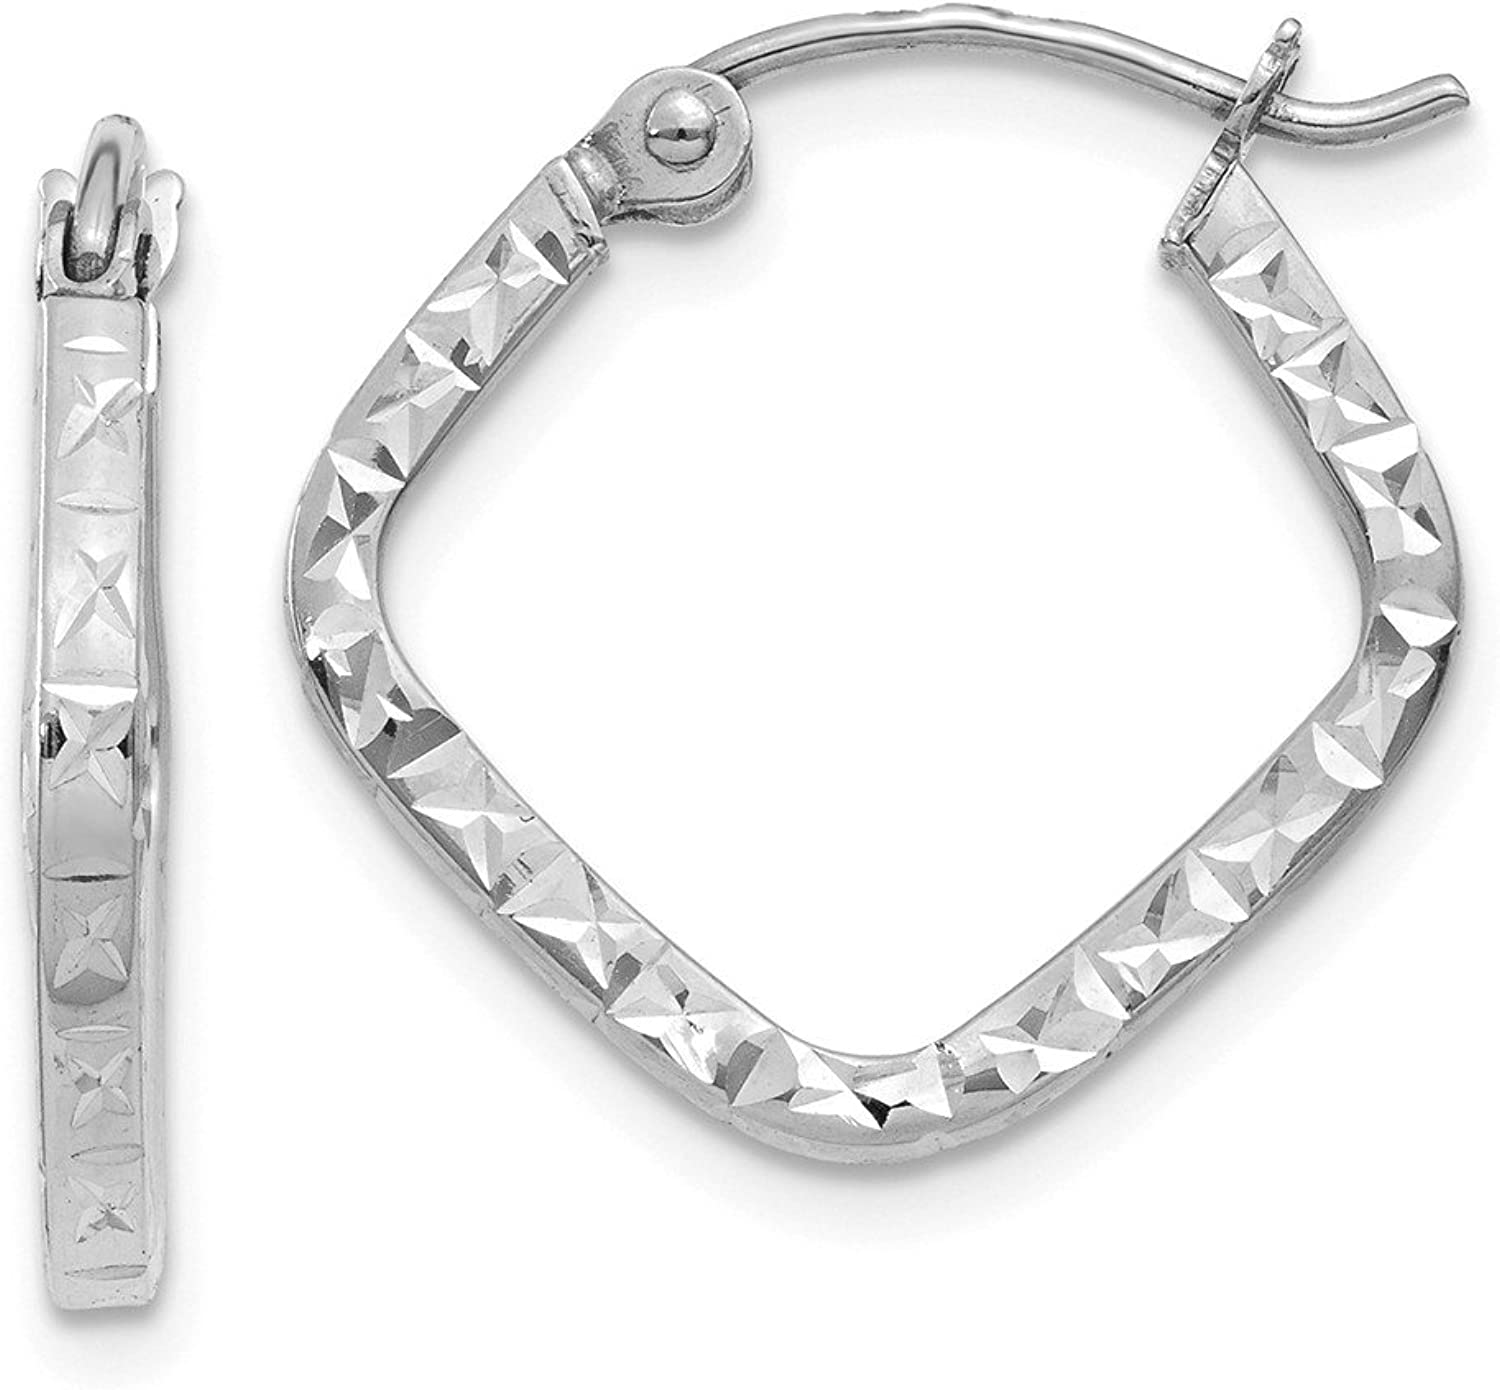 Beautiful White gold 14K 14K White gold Diamond Cut Squared Hoop Earrings